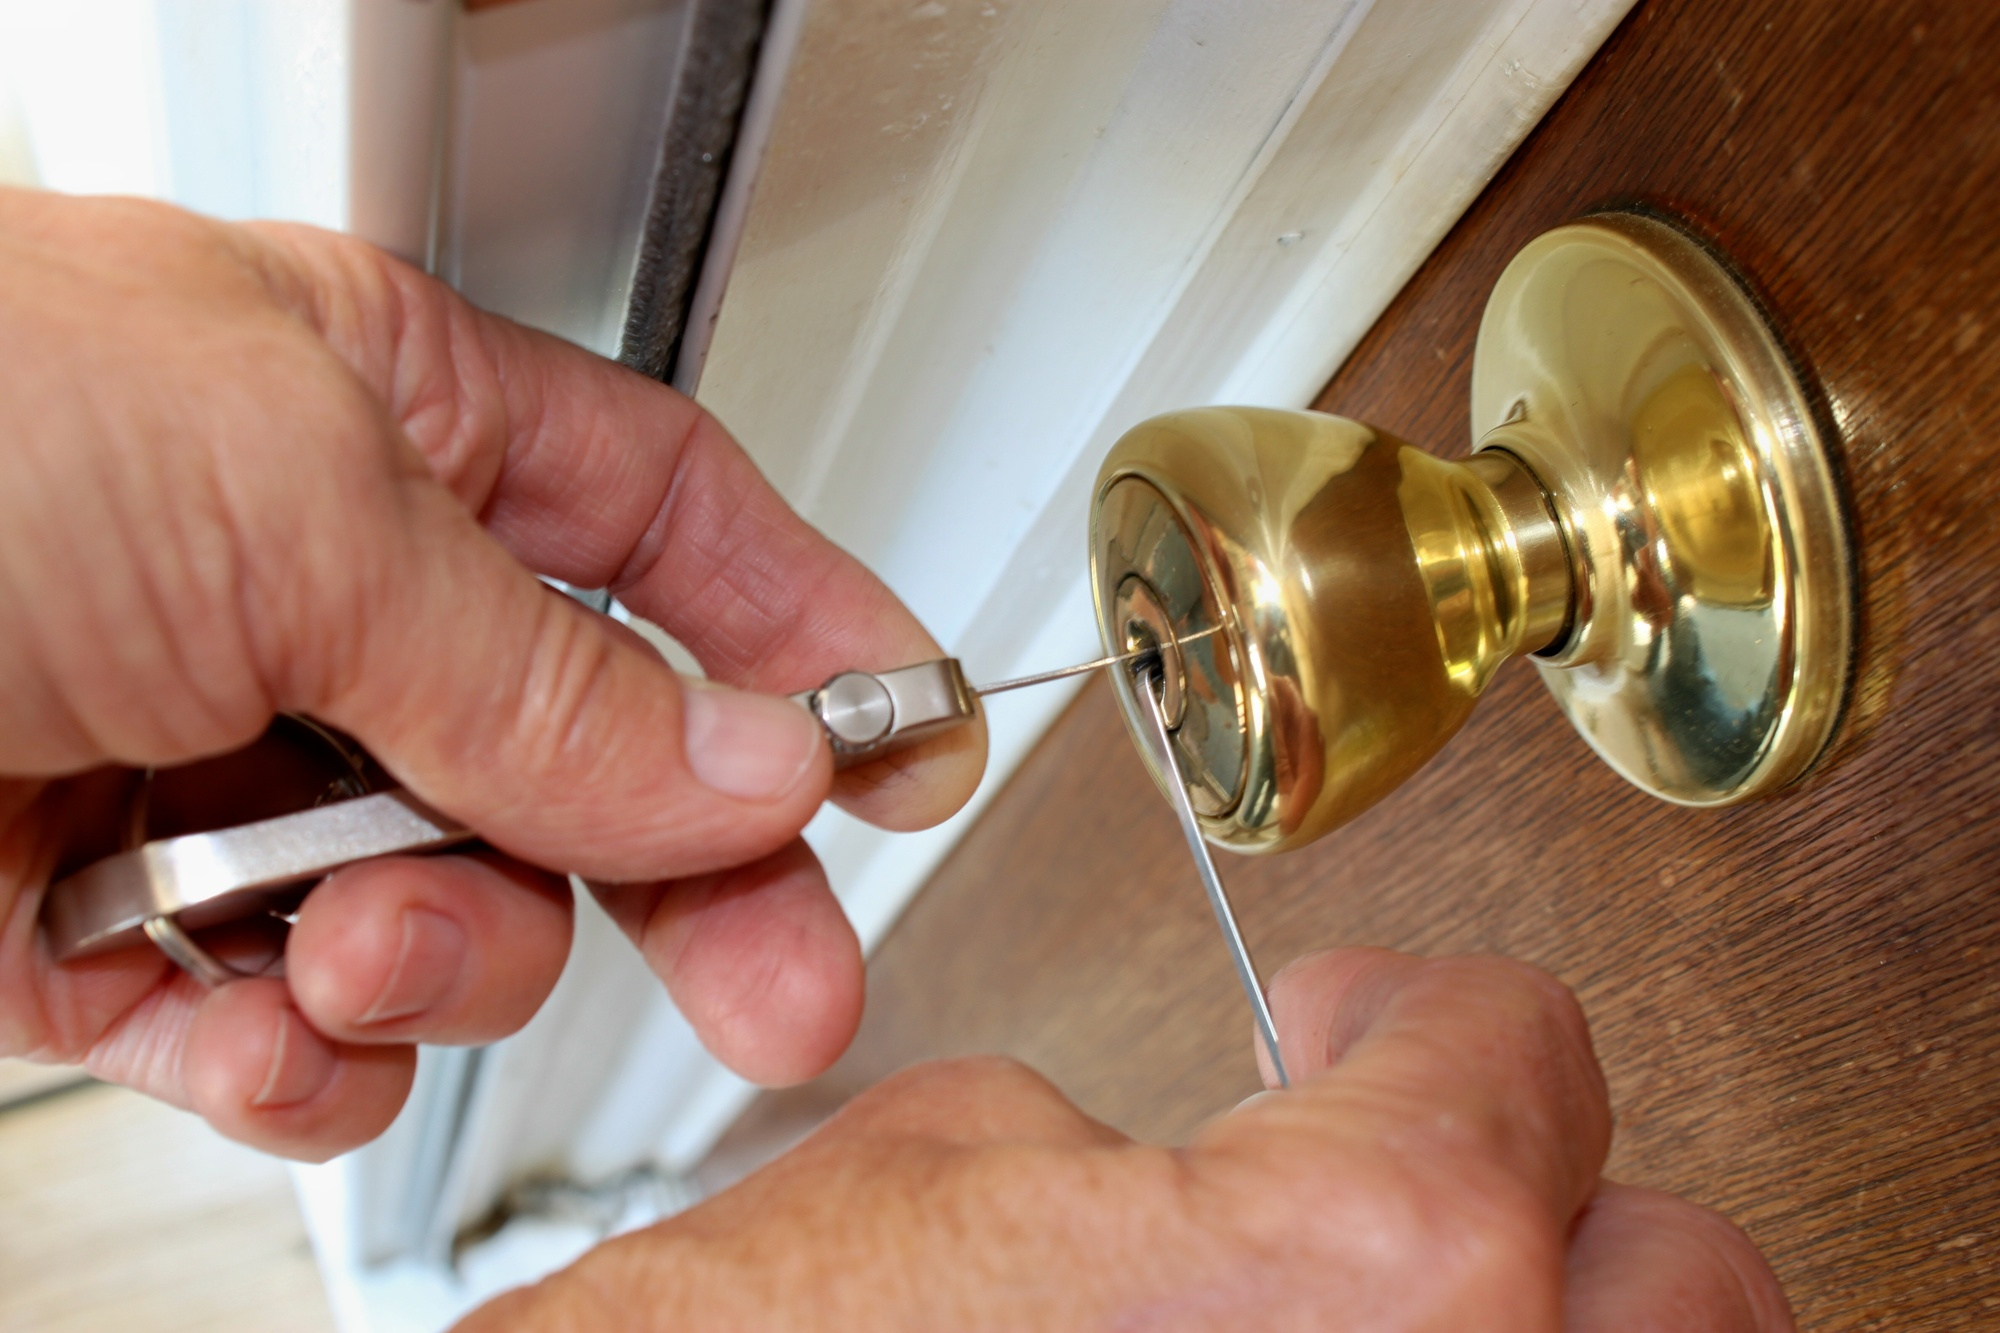 Essential Tips For How To Unlock A Door Without A Key